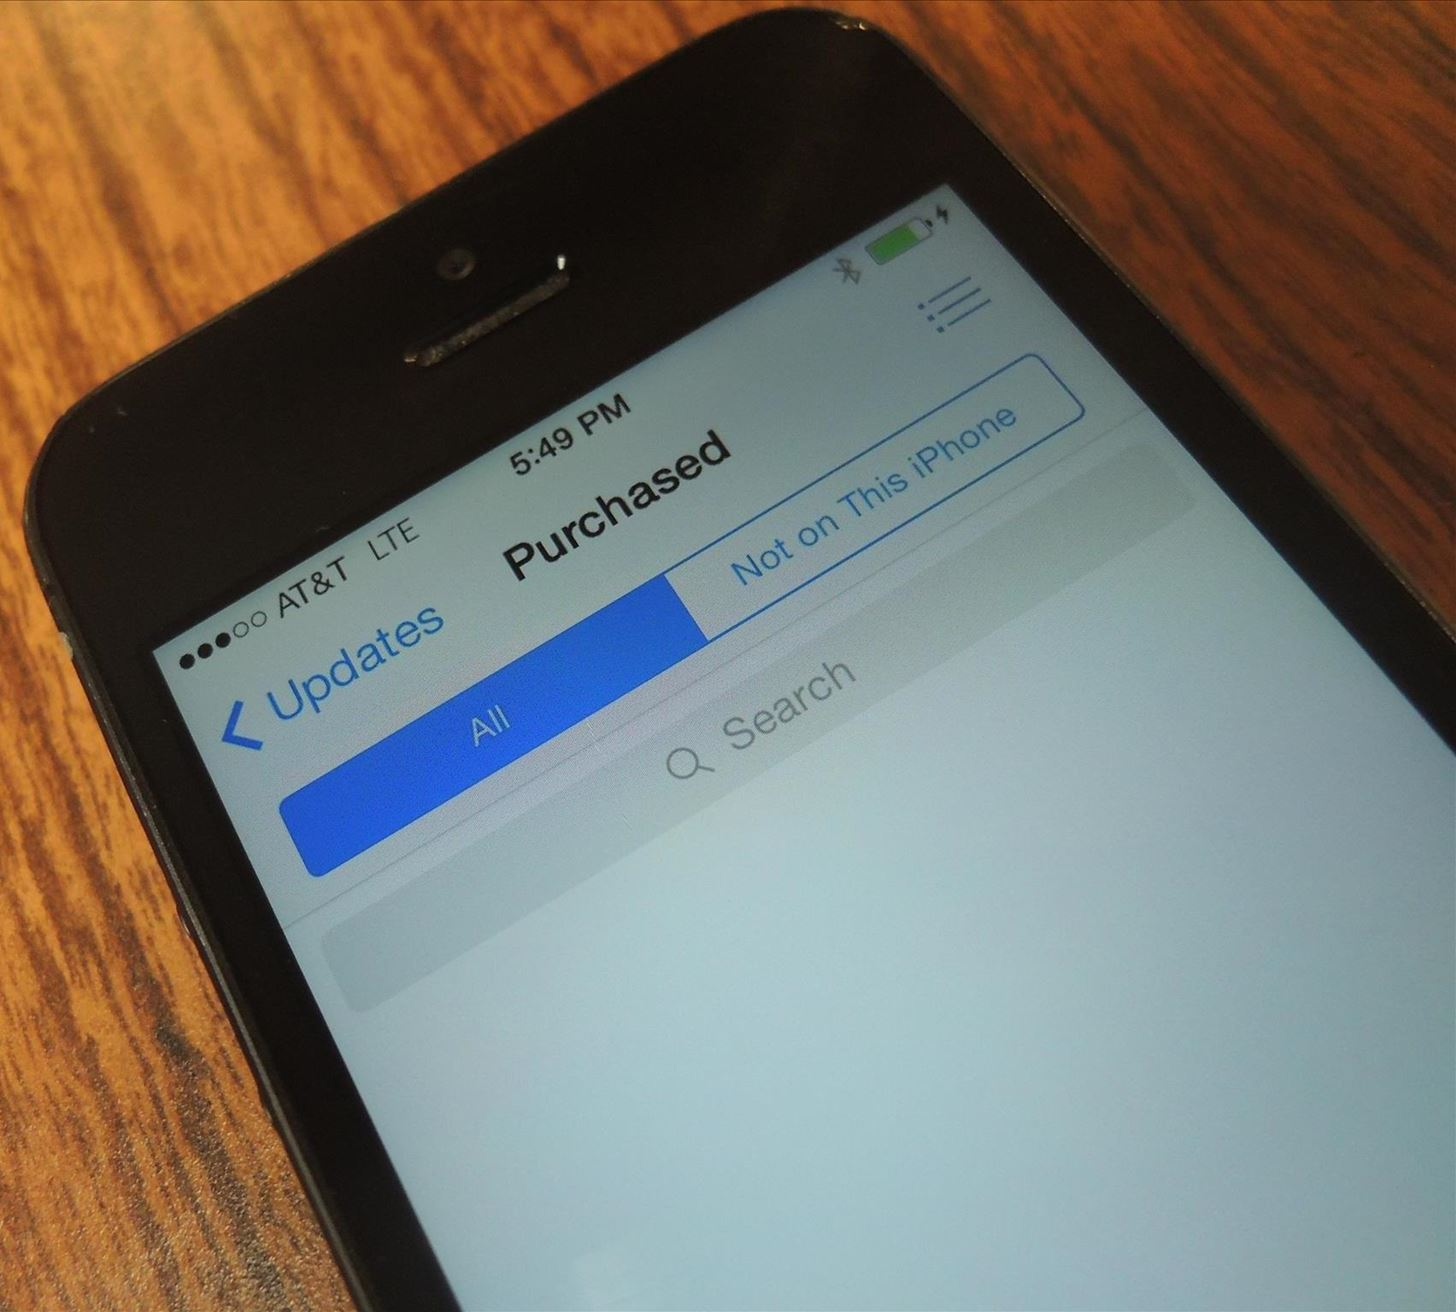 Purchased Apps Not Showing Up in the App Store? Here's How You Fix It in iOS 7